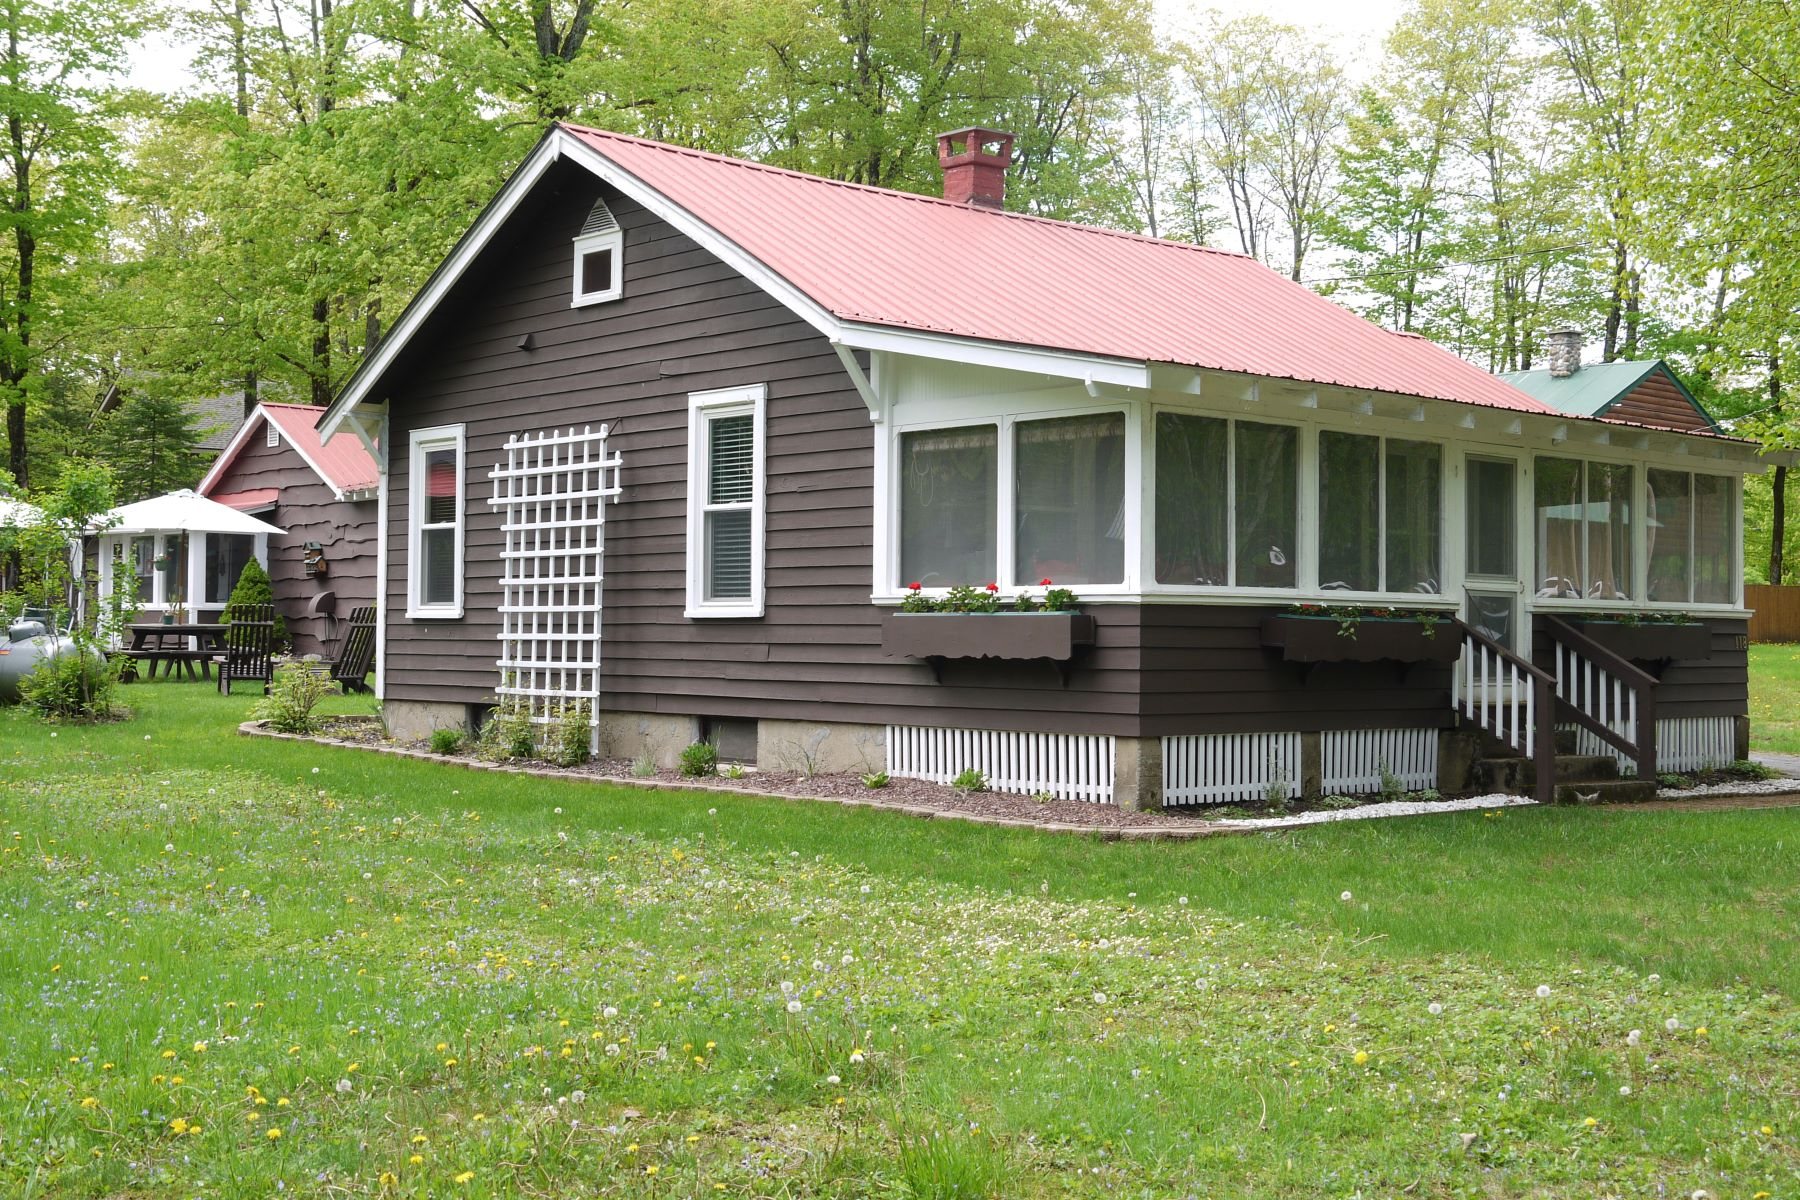 Multi-Family Homes for Sale at 2 Year round homes in the Eagle Bay Park 118 East Ave Eagle Bay, New York 13331 United States